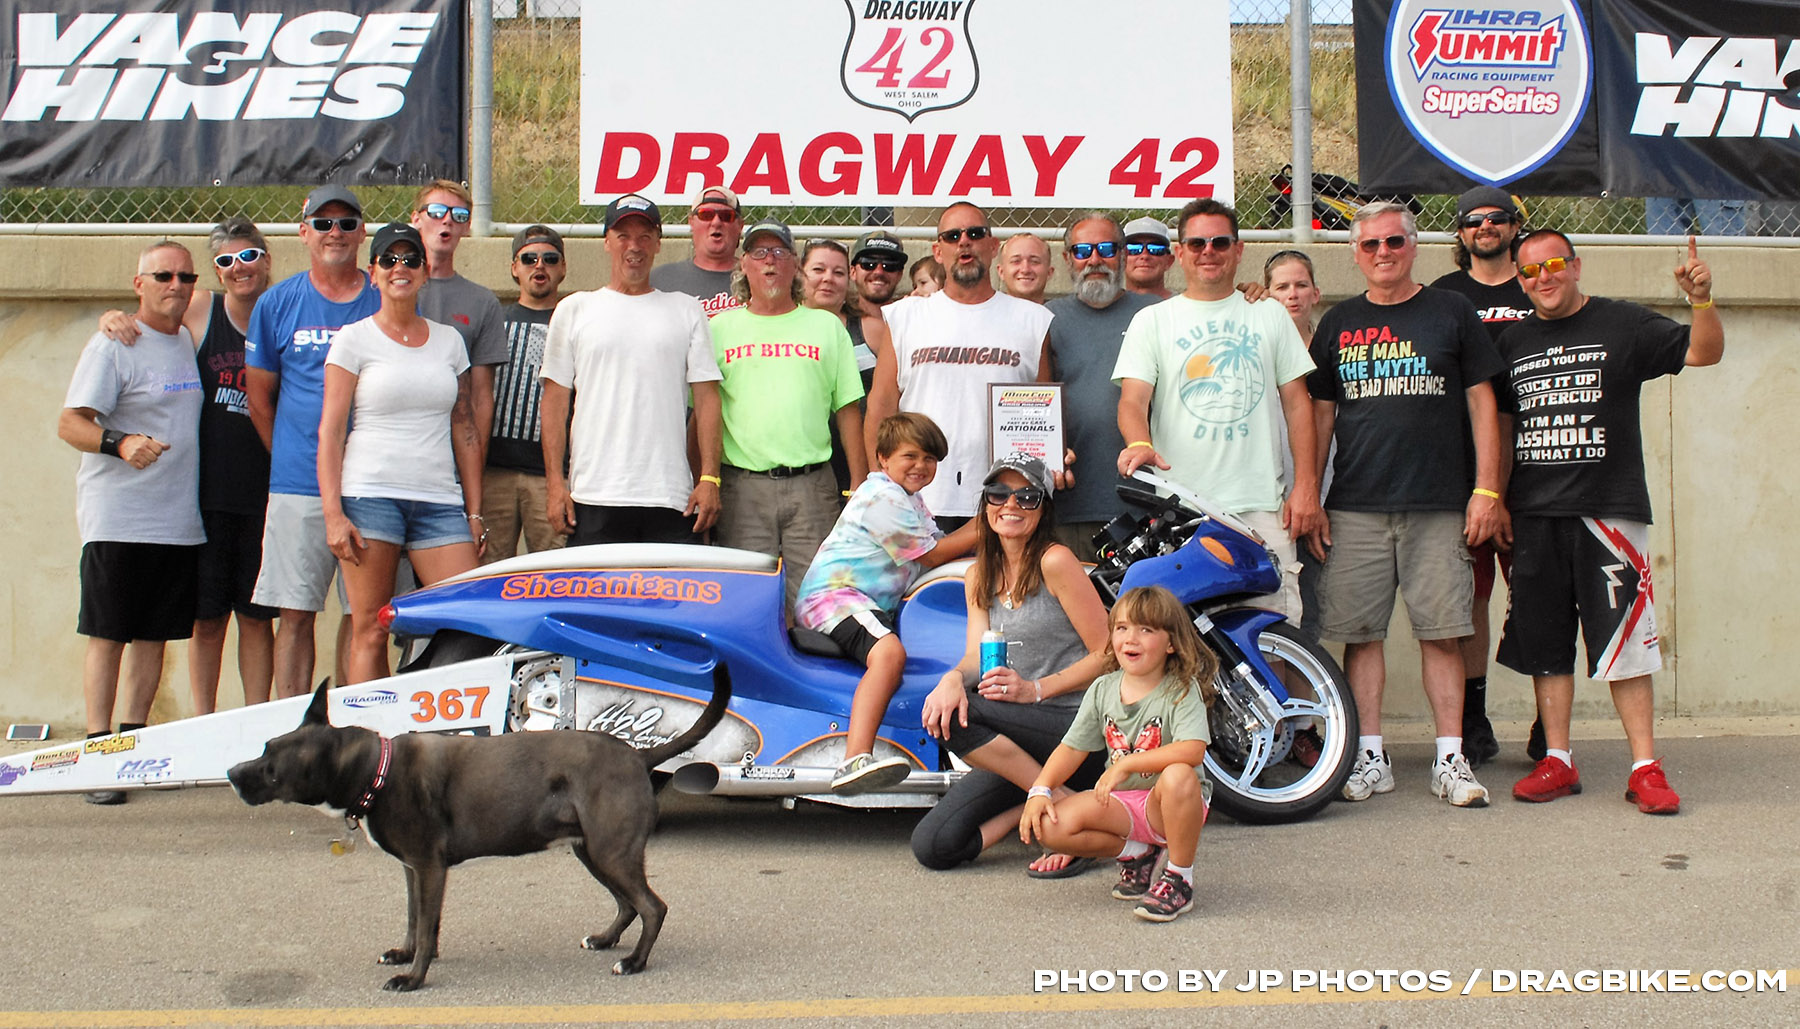 Craig Adams - 2020 Man Cup Dragway 42